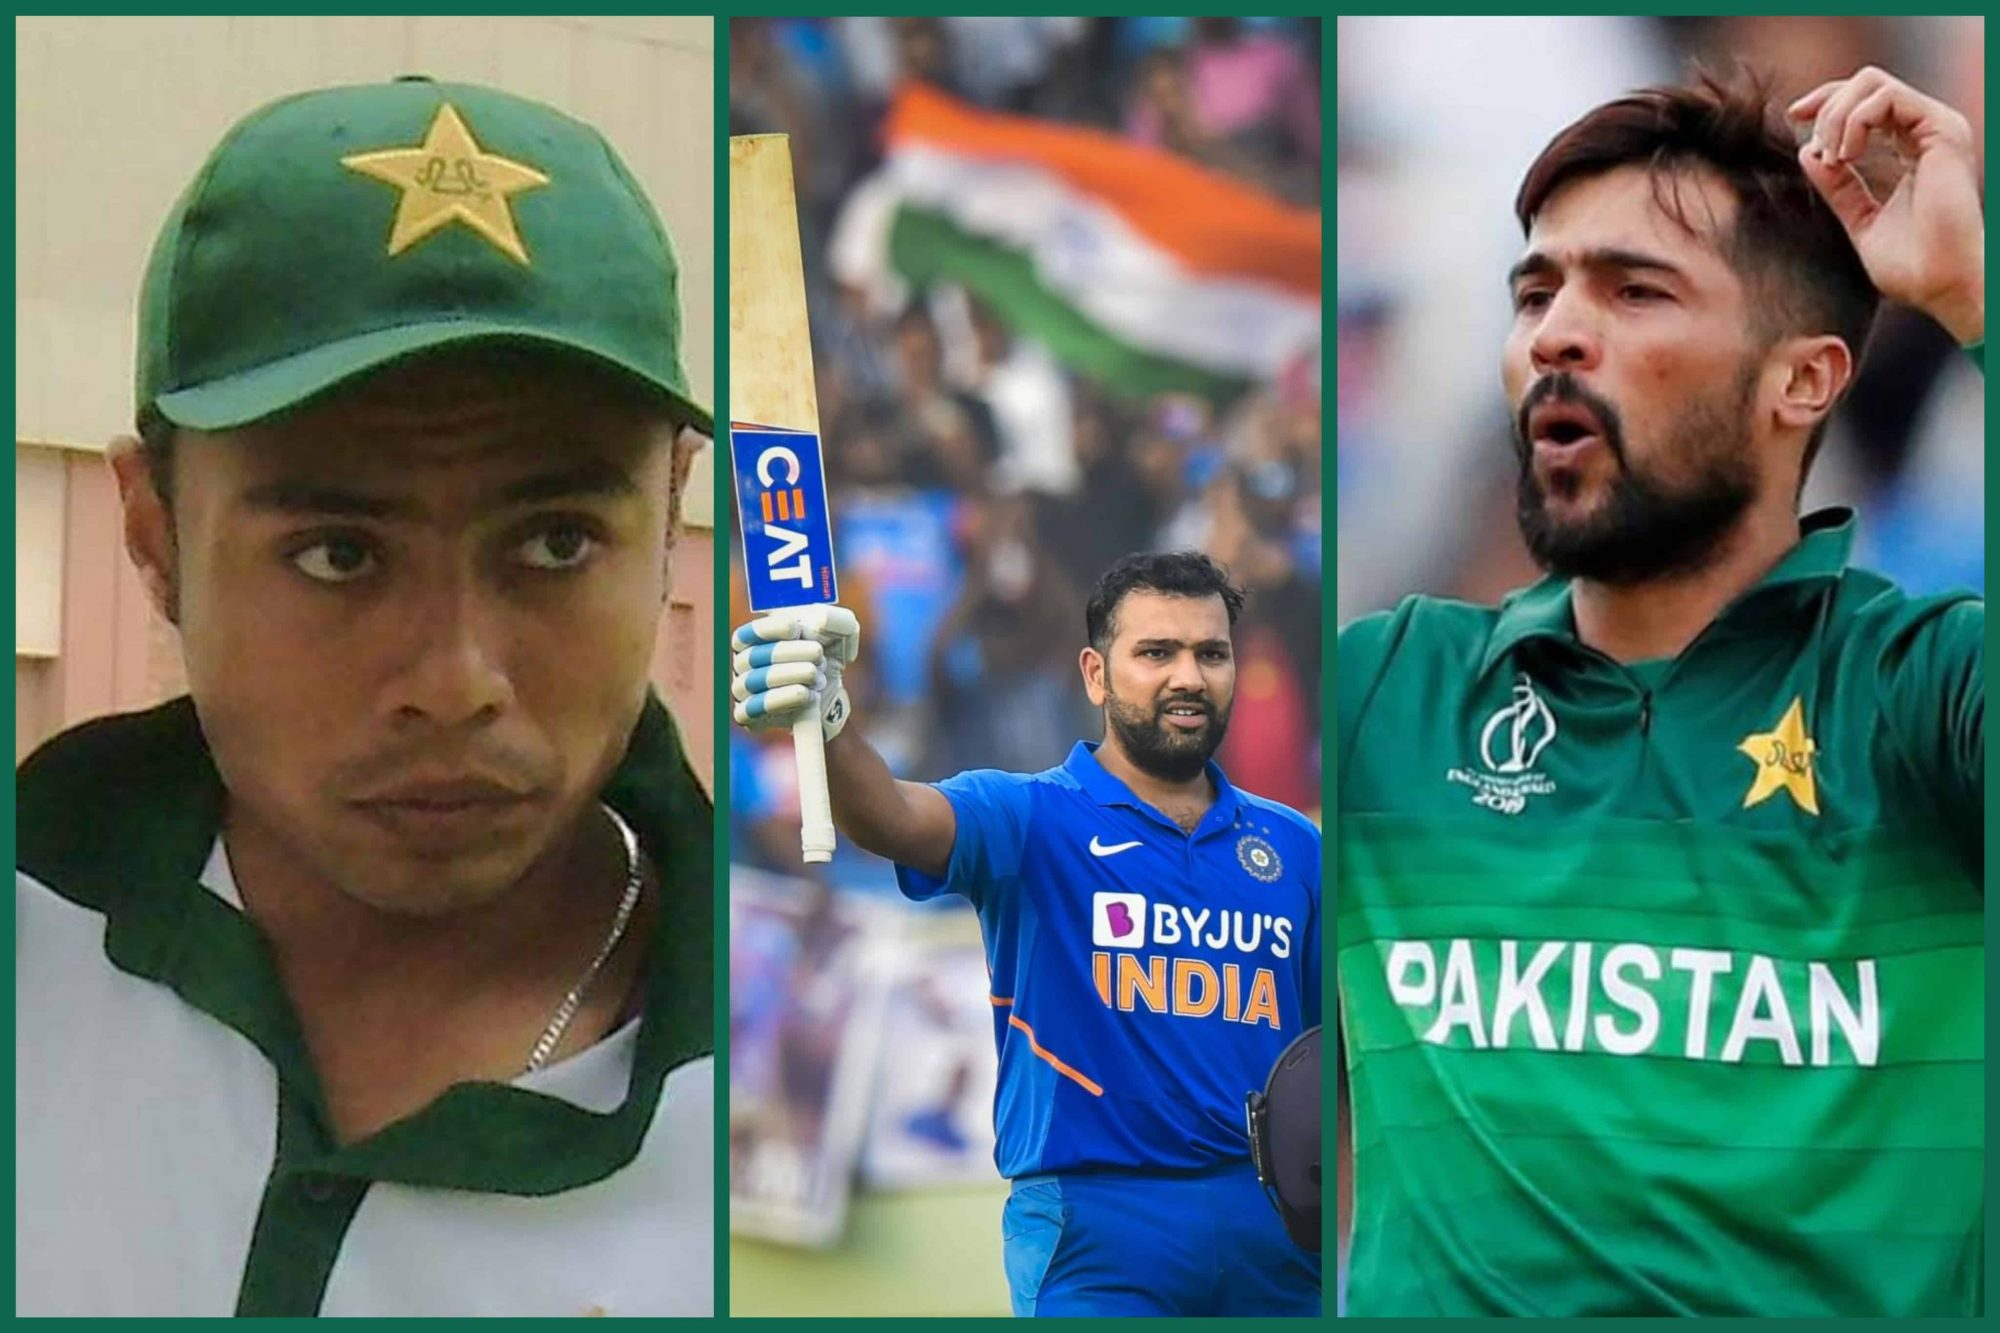 Come Back, Perform And Then Make Such Comments: Danish Kaneria Slams Mohammad Amir For His Remarks On Rohit Sharma